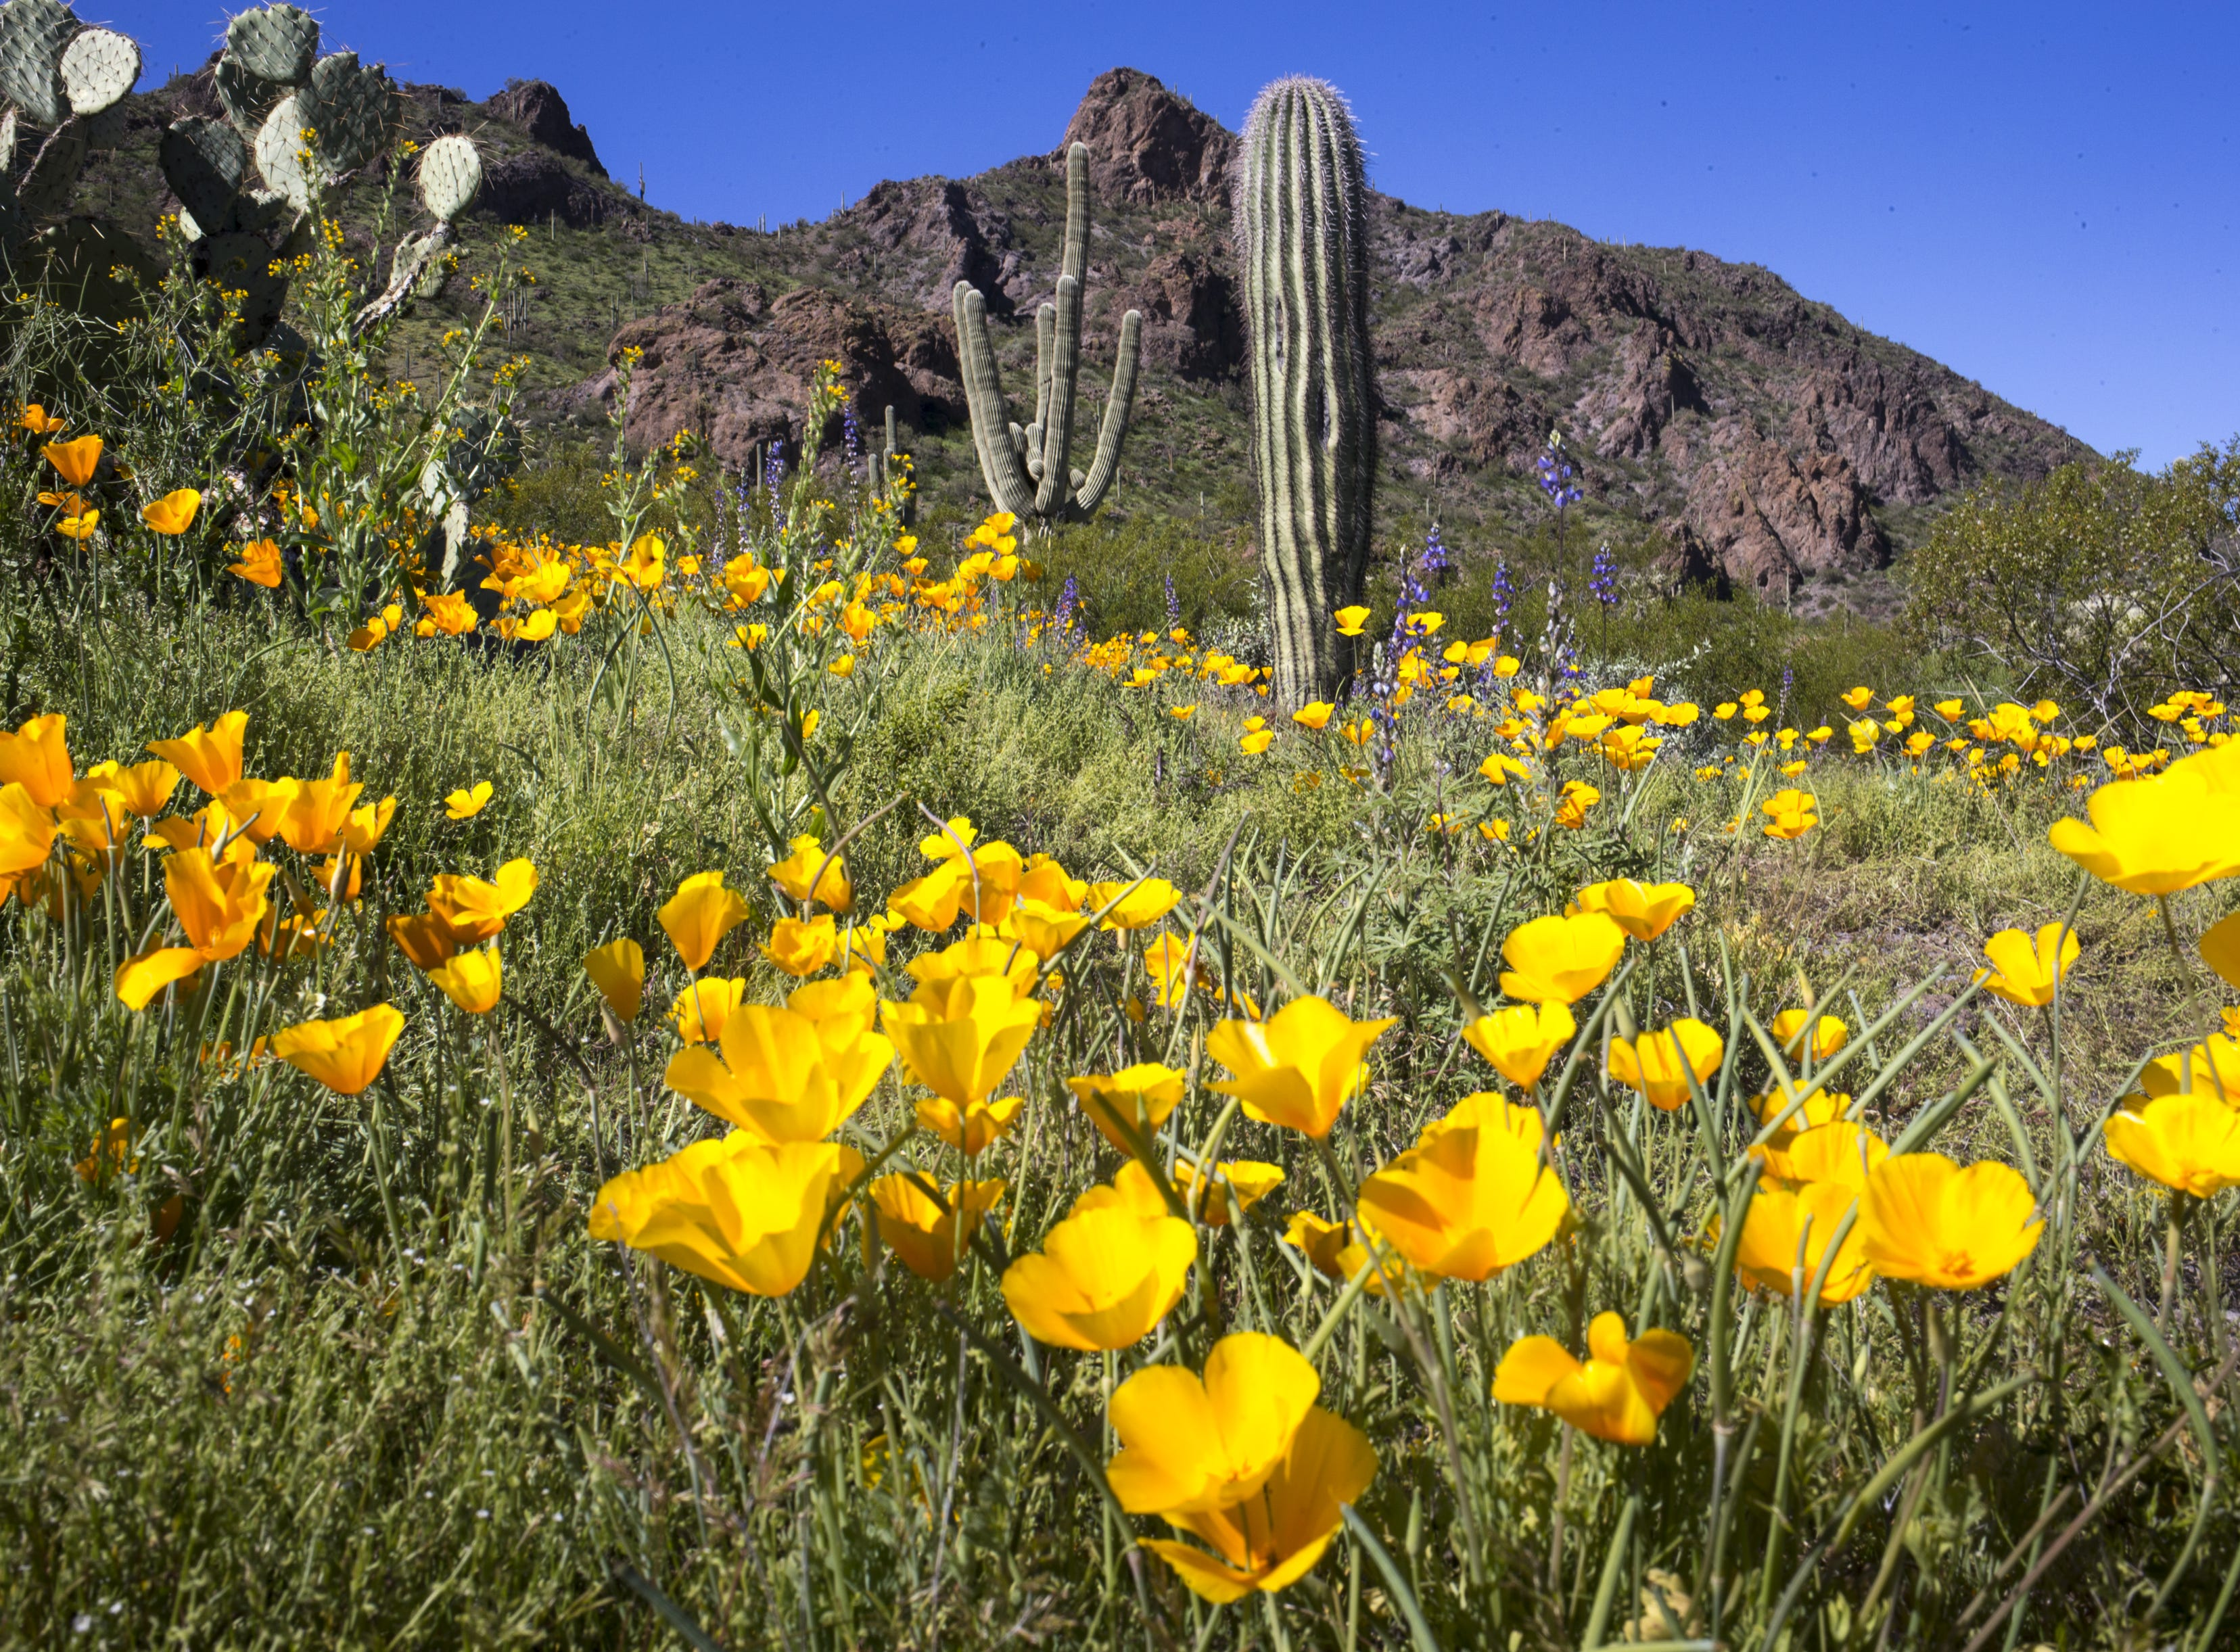 Poppies and cactus, March 5, 2019, at Picacho Peak State Park, Arizona.